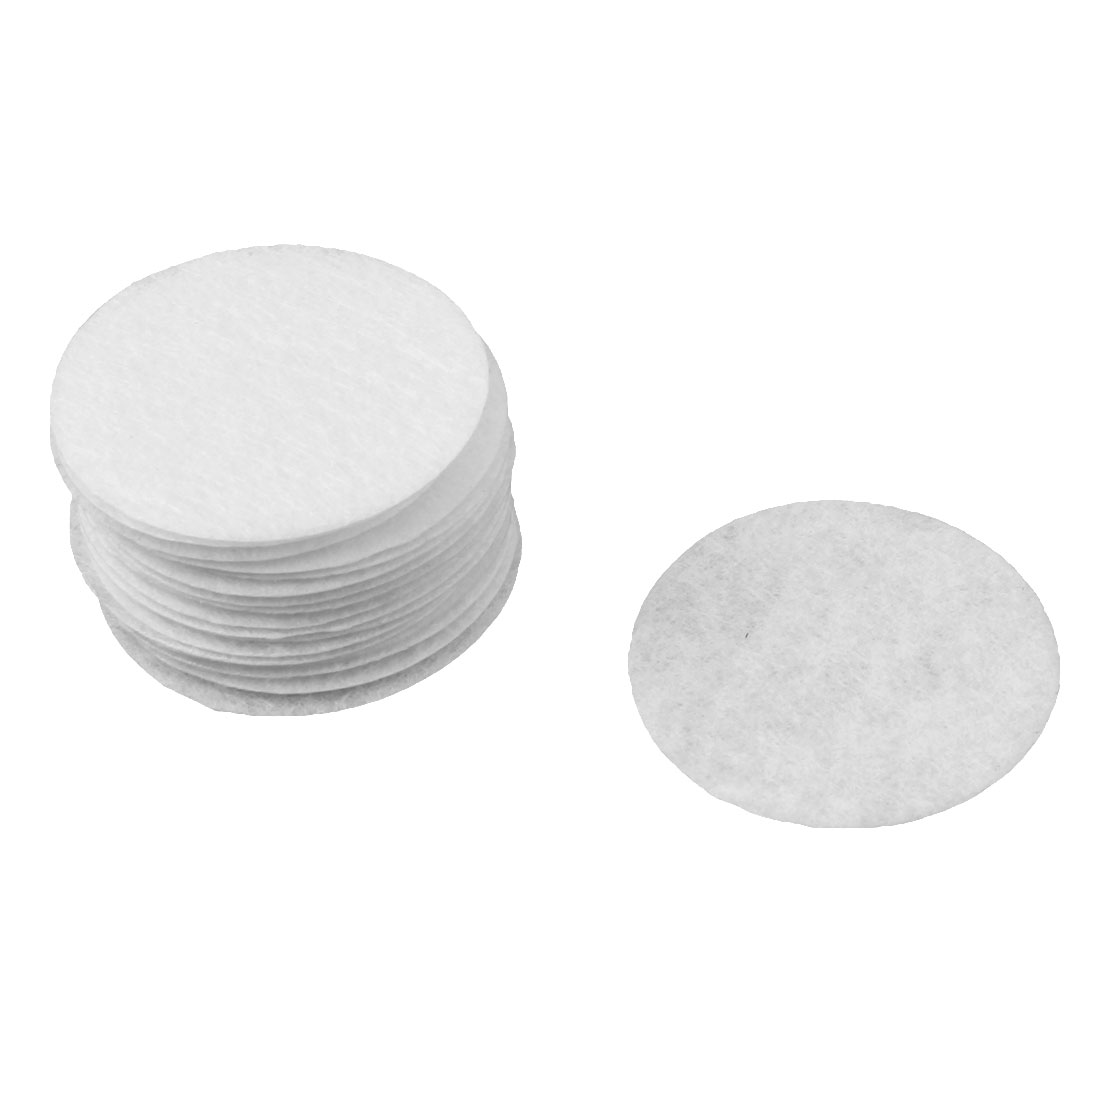 DIY Headwear Round Shaped Hair Band Accessories Circle Pad White 40mm Dia 20pcs